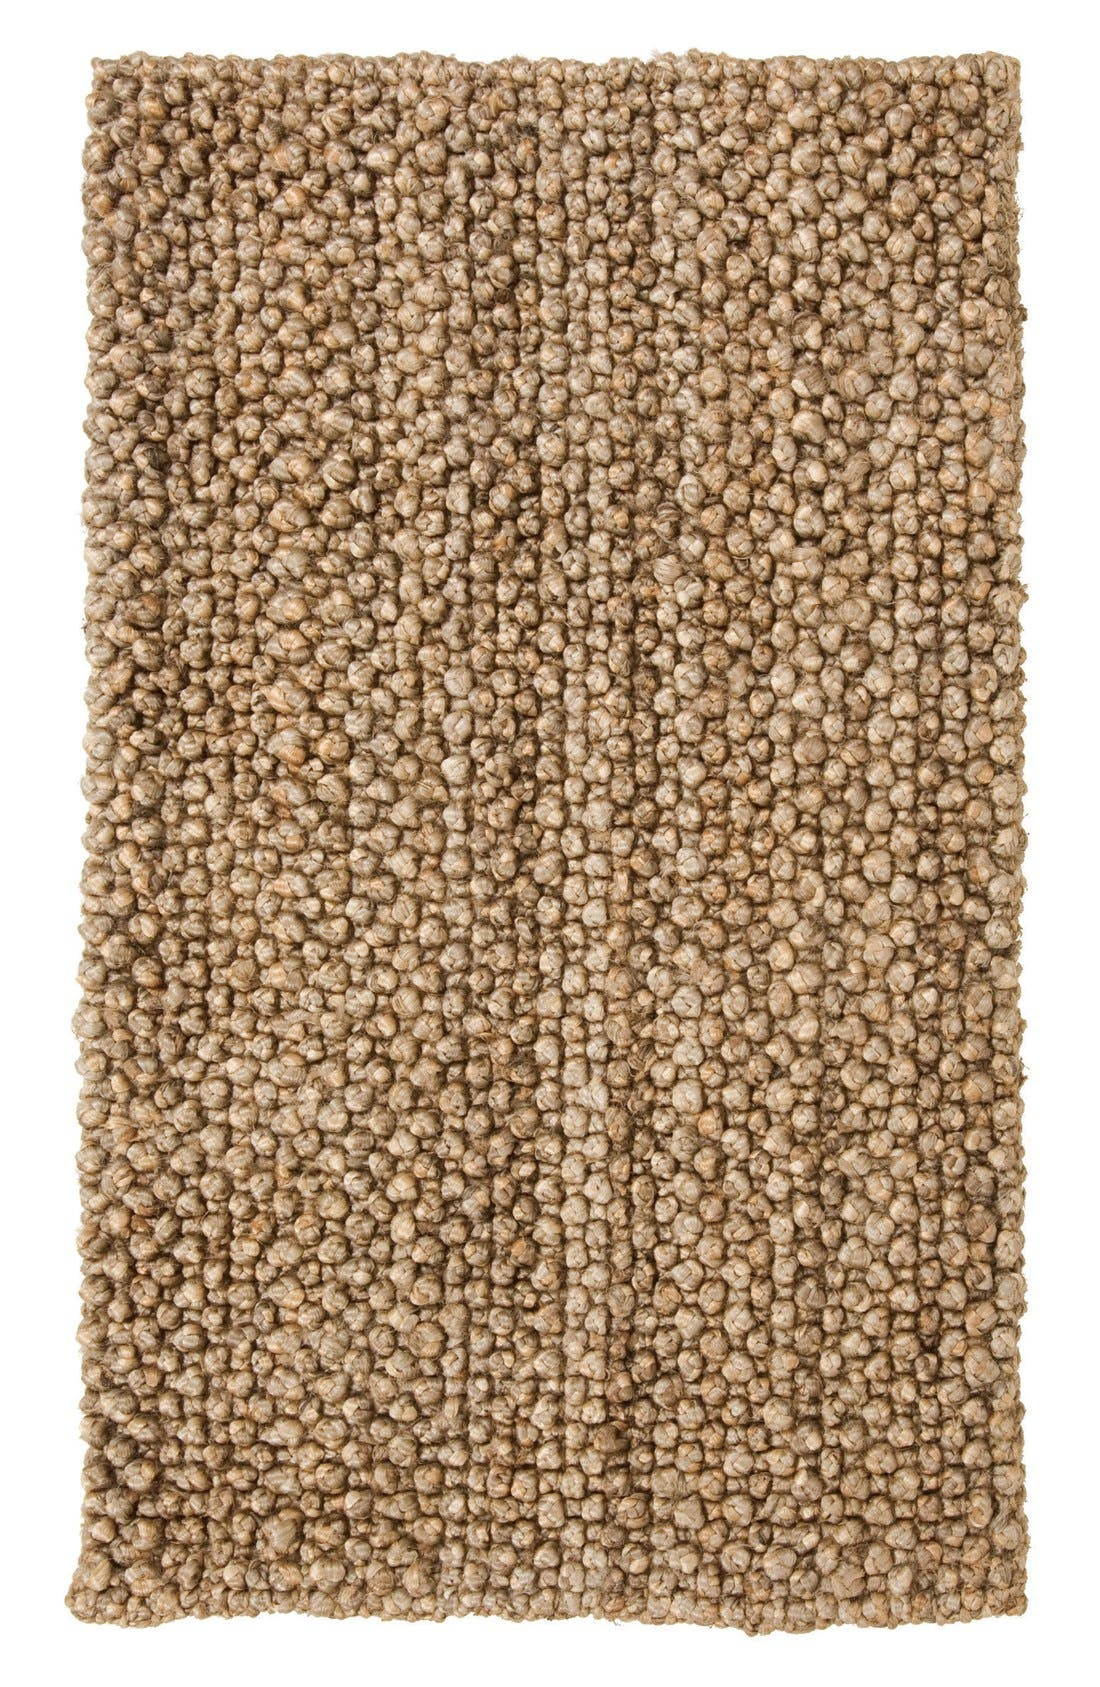 Knobby Loop Handwoven Rug,                         Main,                         color, Natural